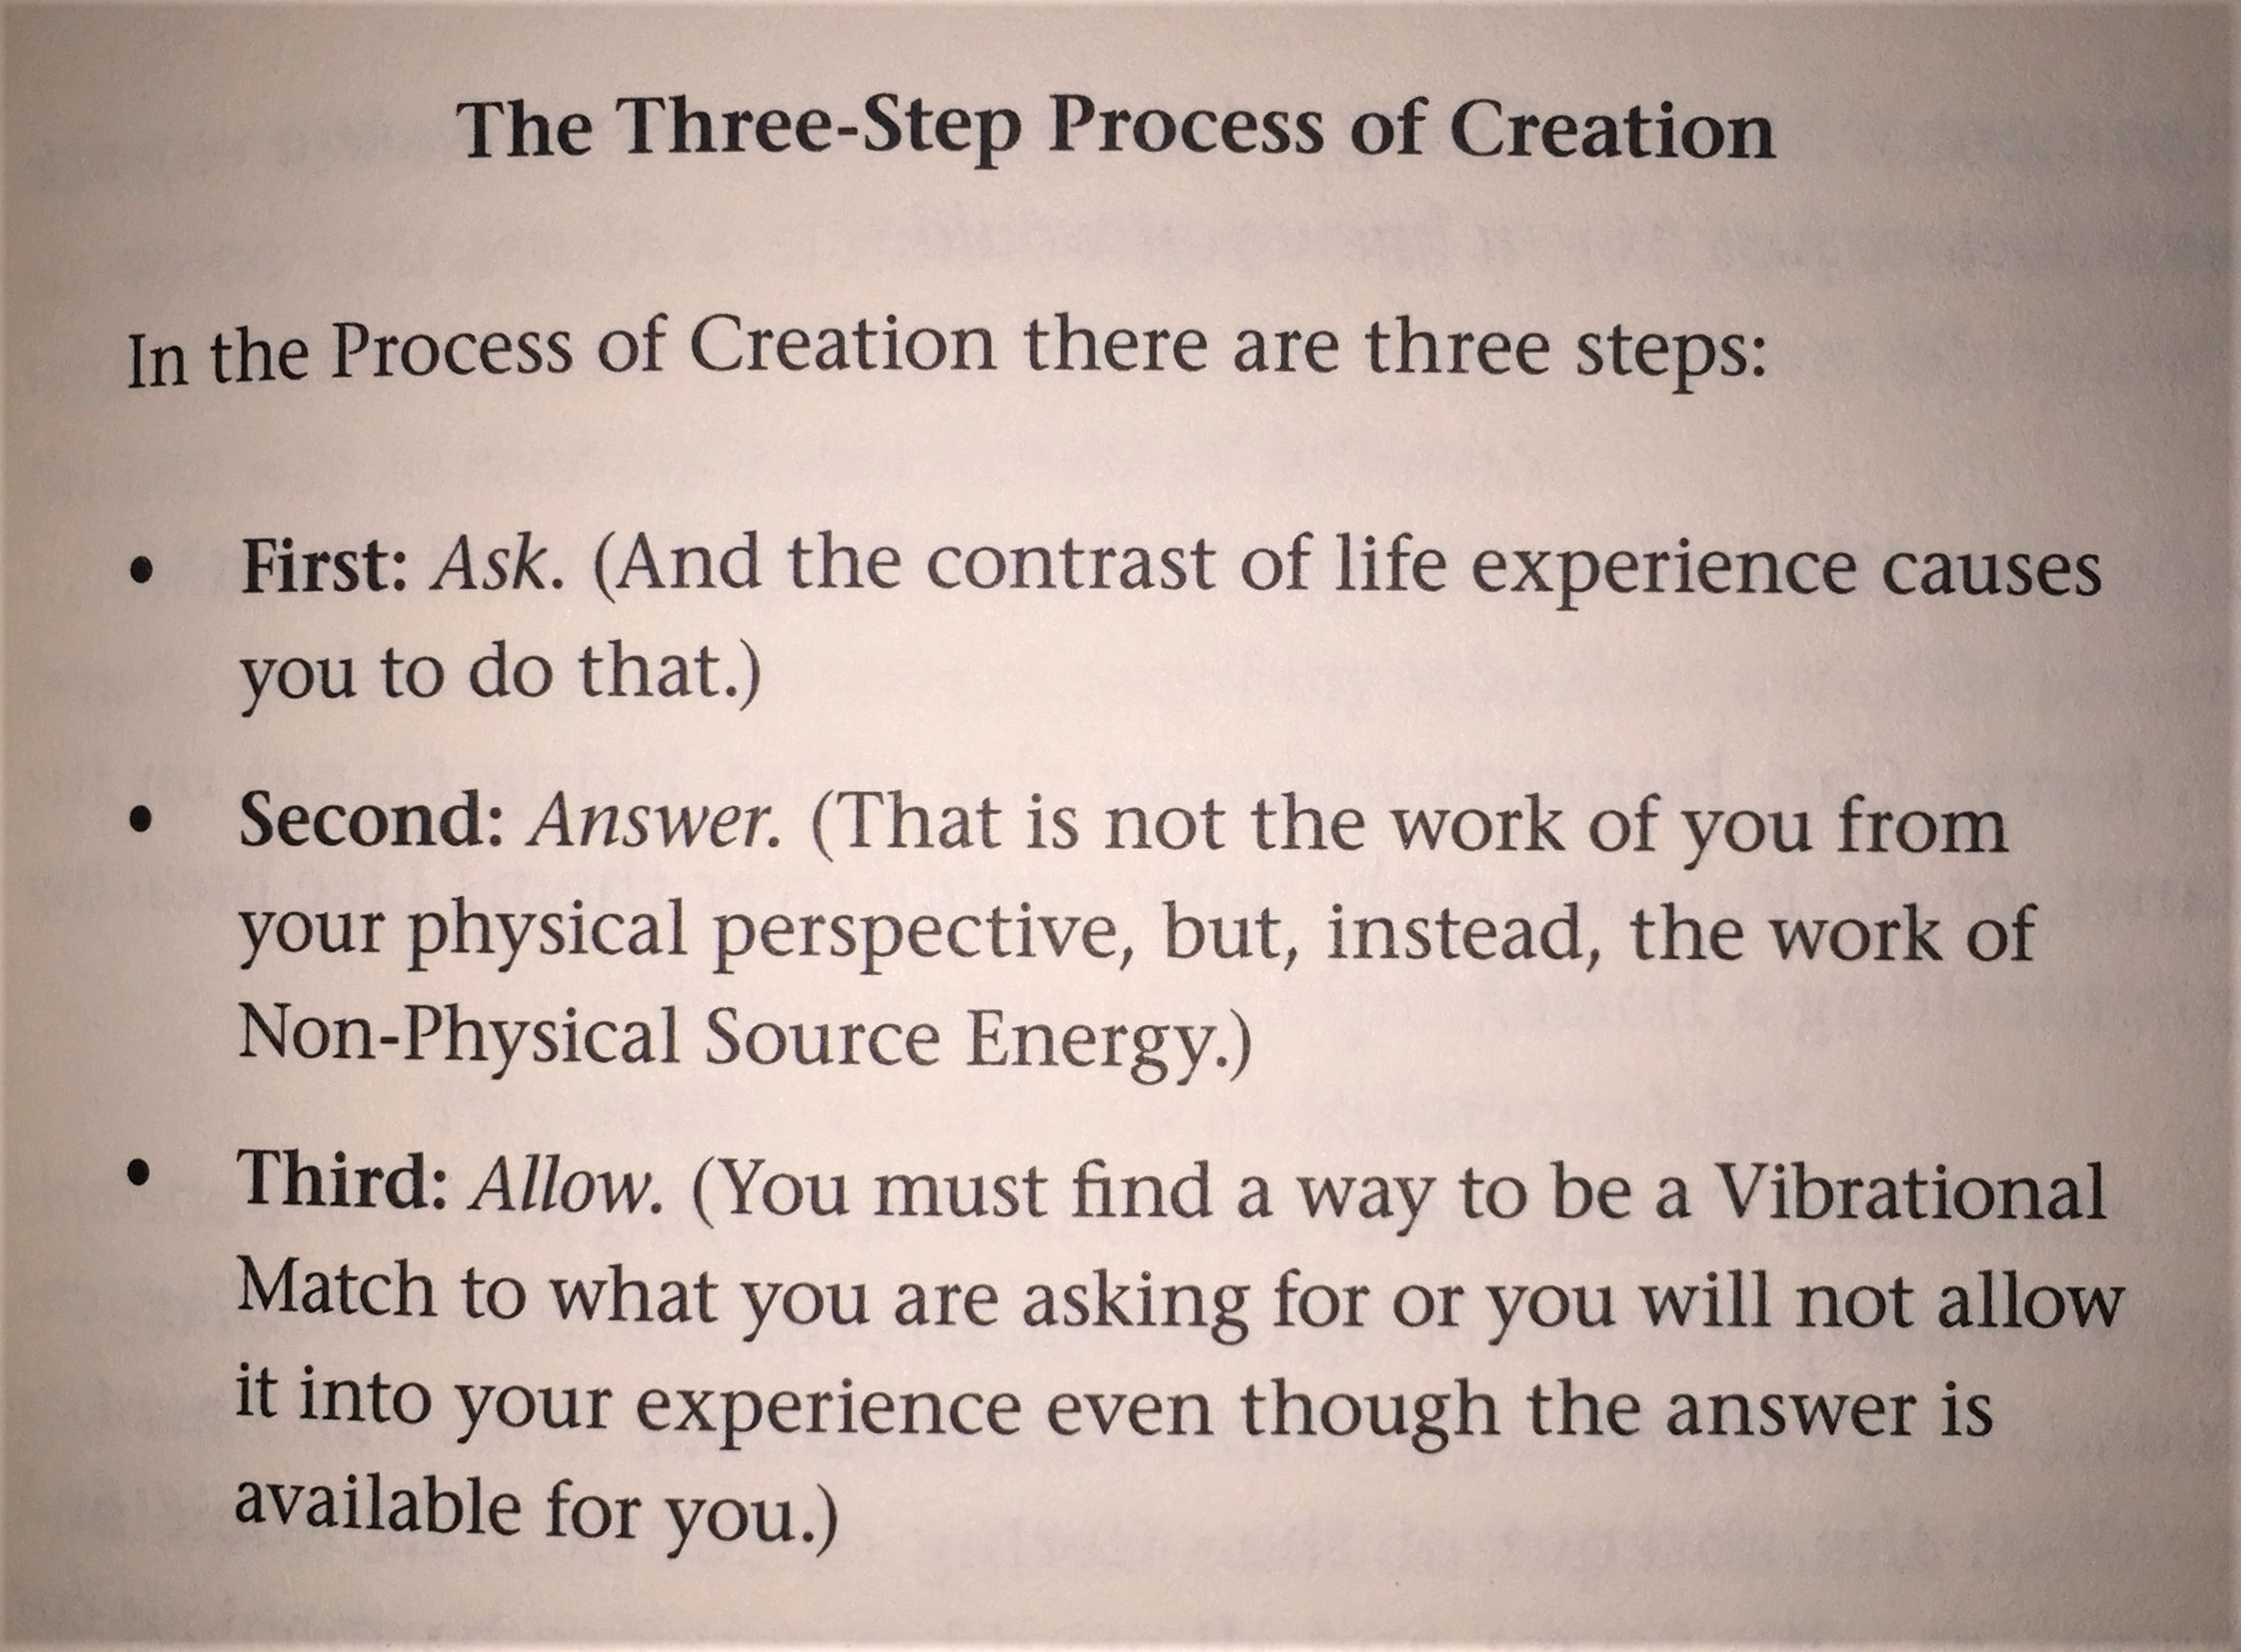 The Three-Step Process of Creation